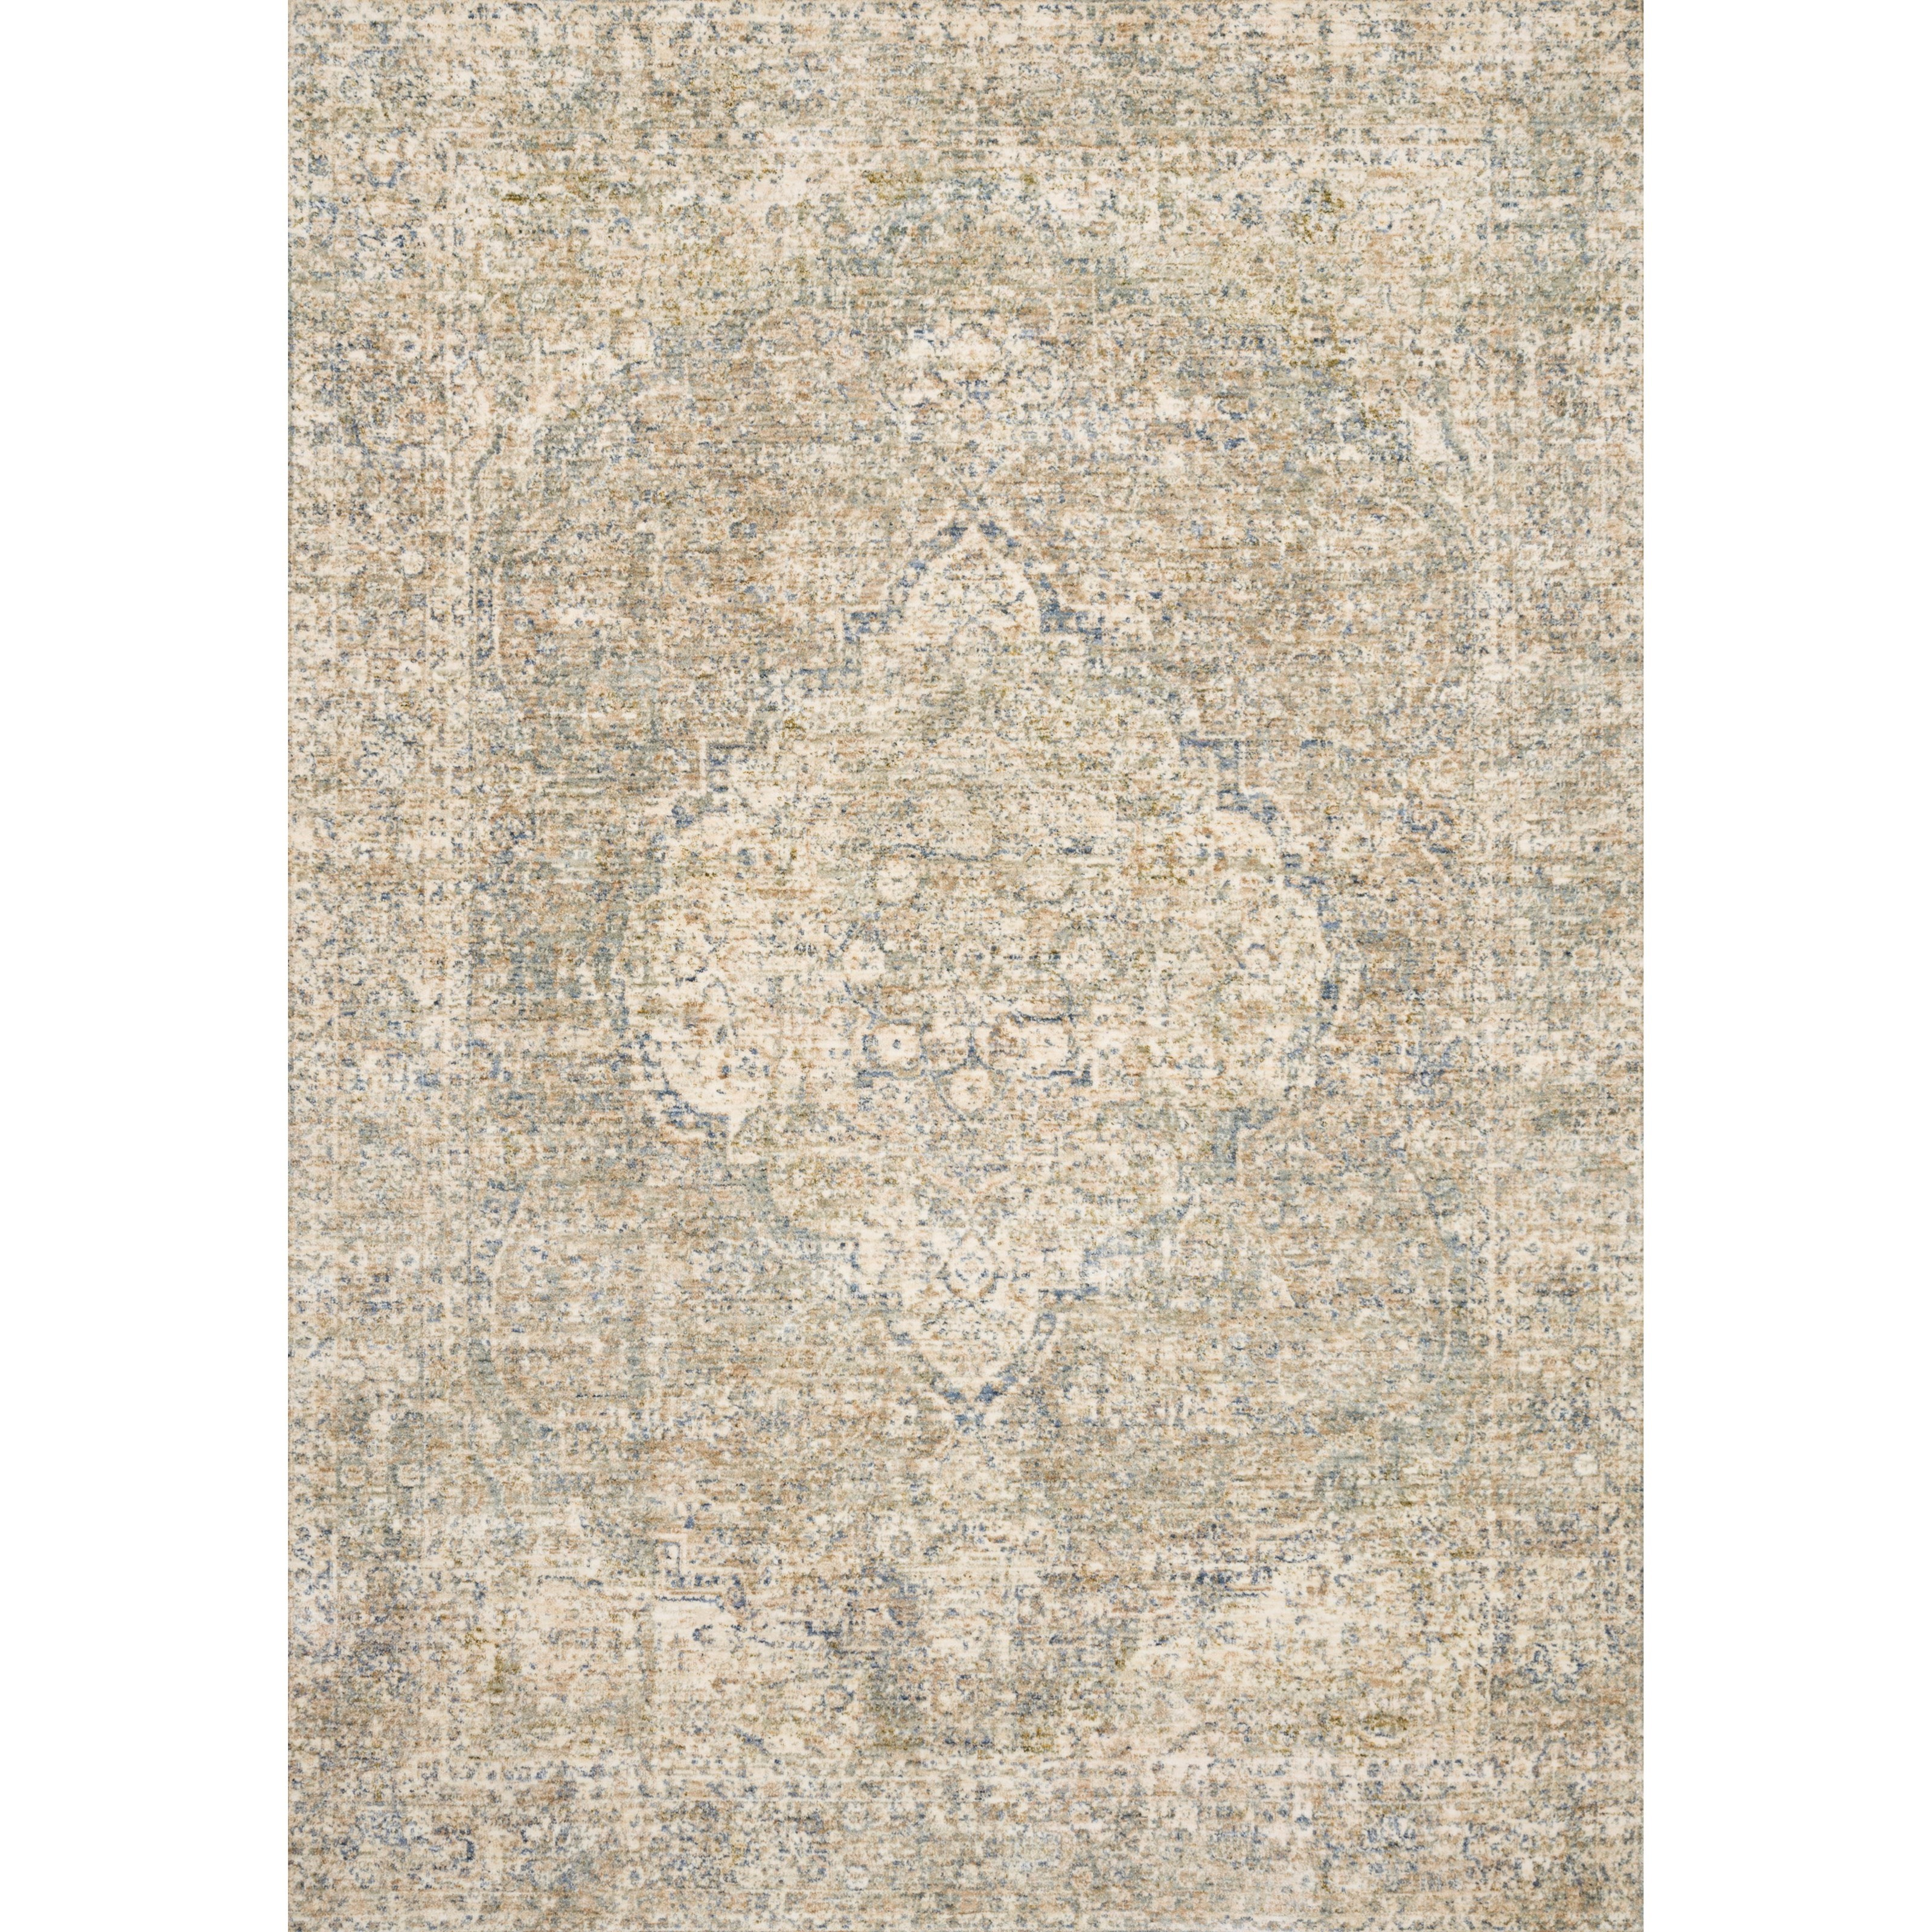 """Revere 11'6"""" x 15'6"""" Granite / Blue Rug by Loloi Rugs at Virginia Furniture Market"""